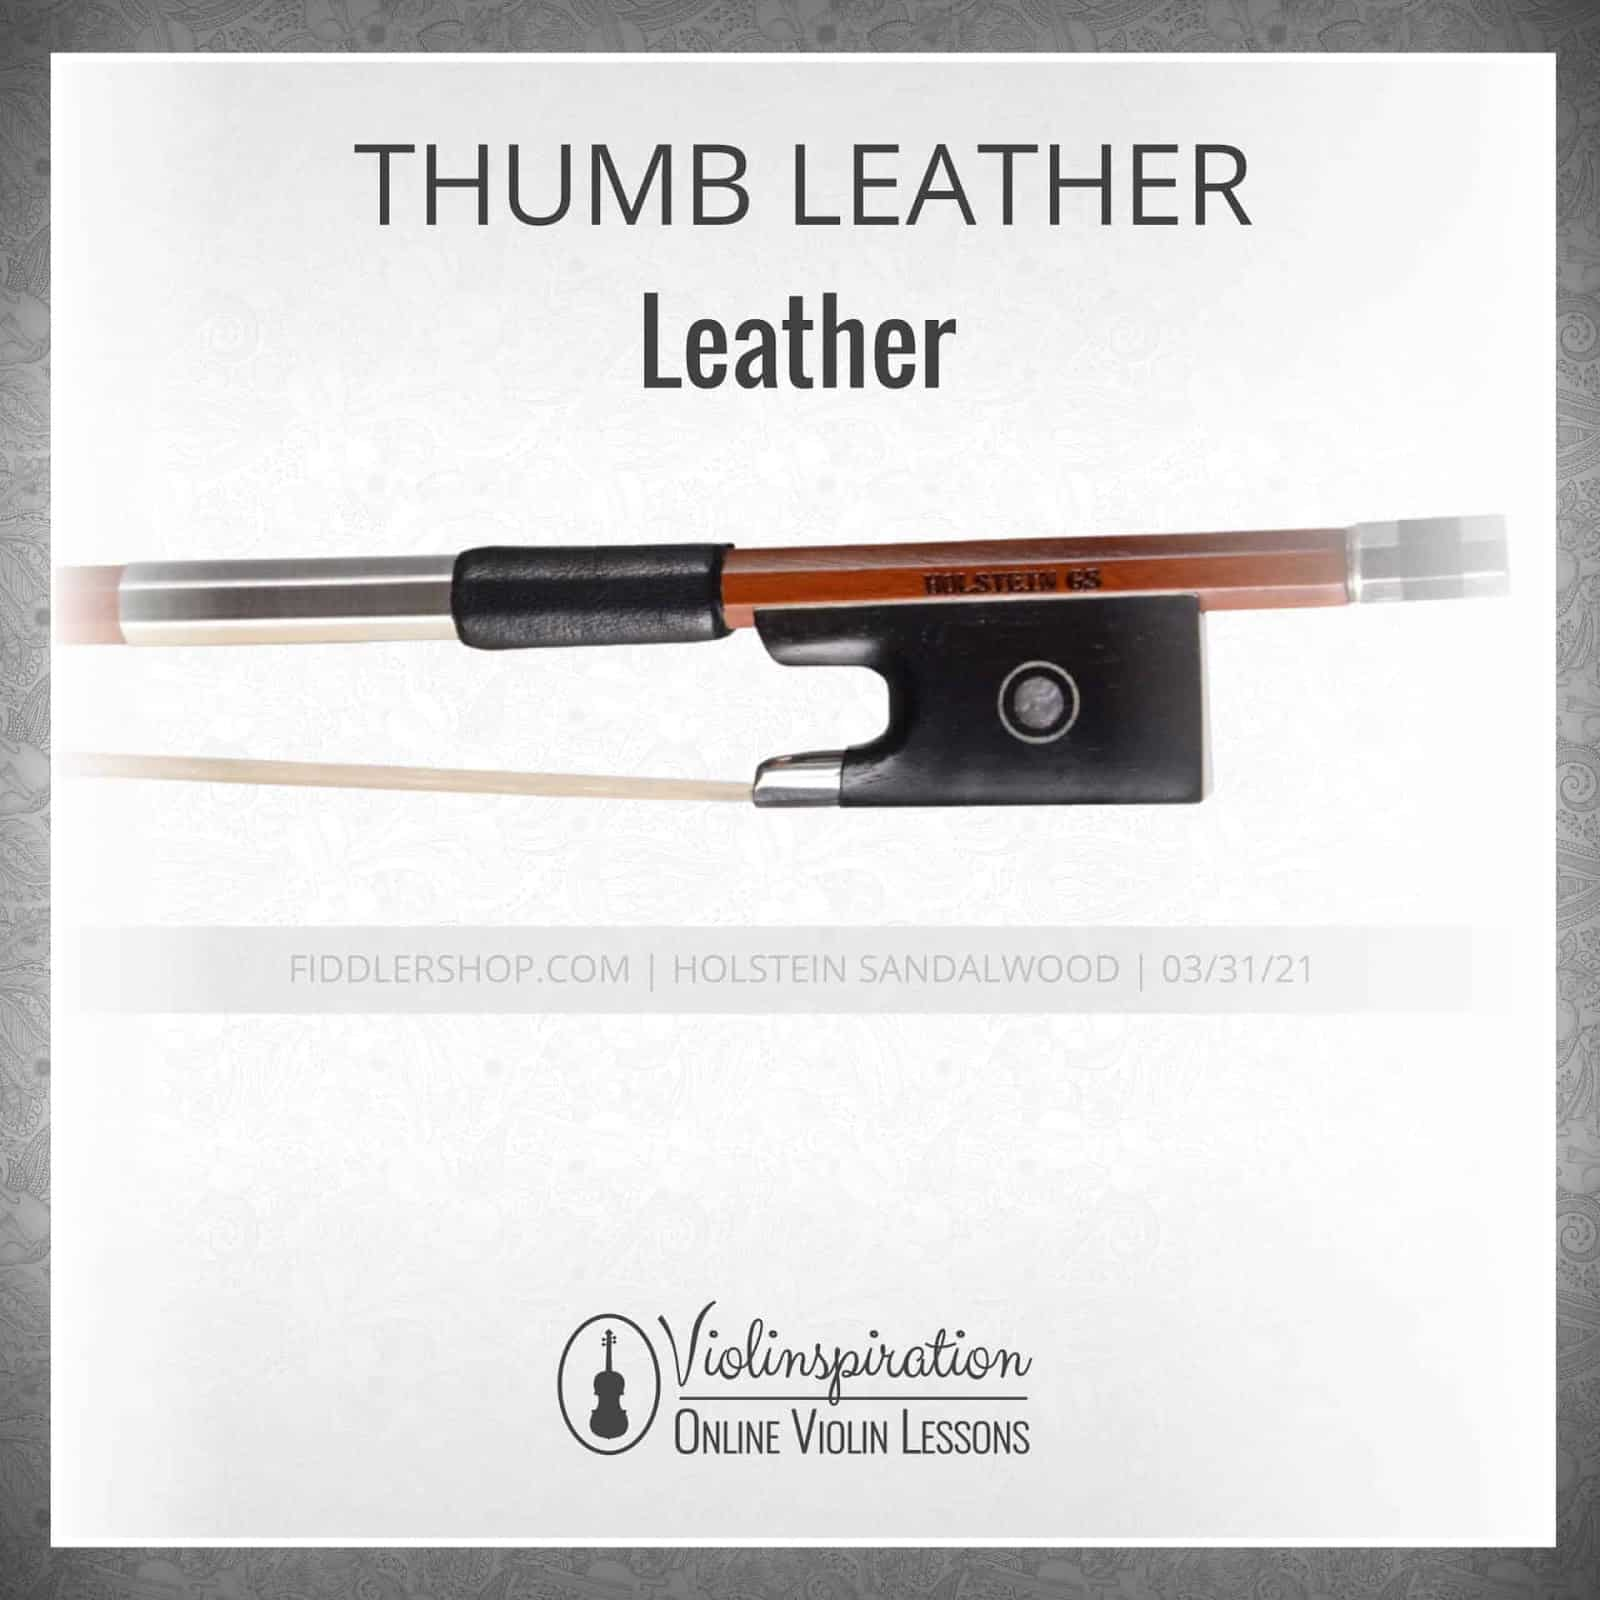 Violin Bow Materials - Thumb Leather - Leather